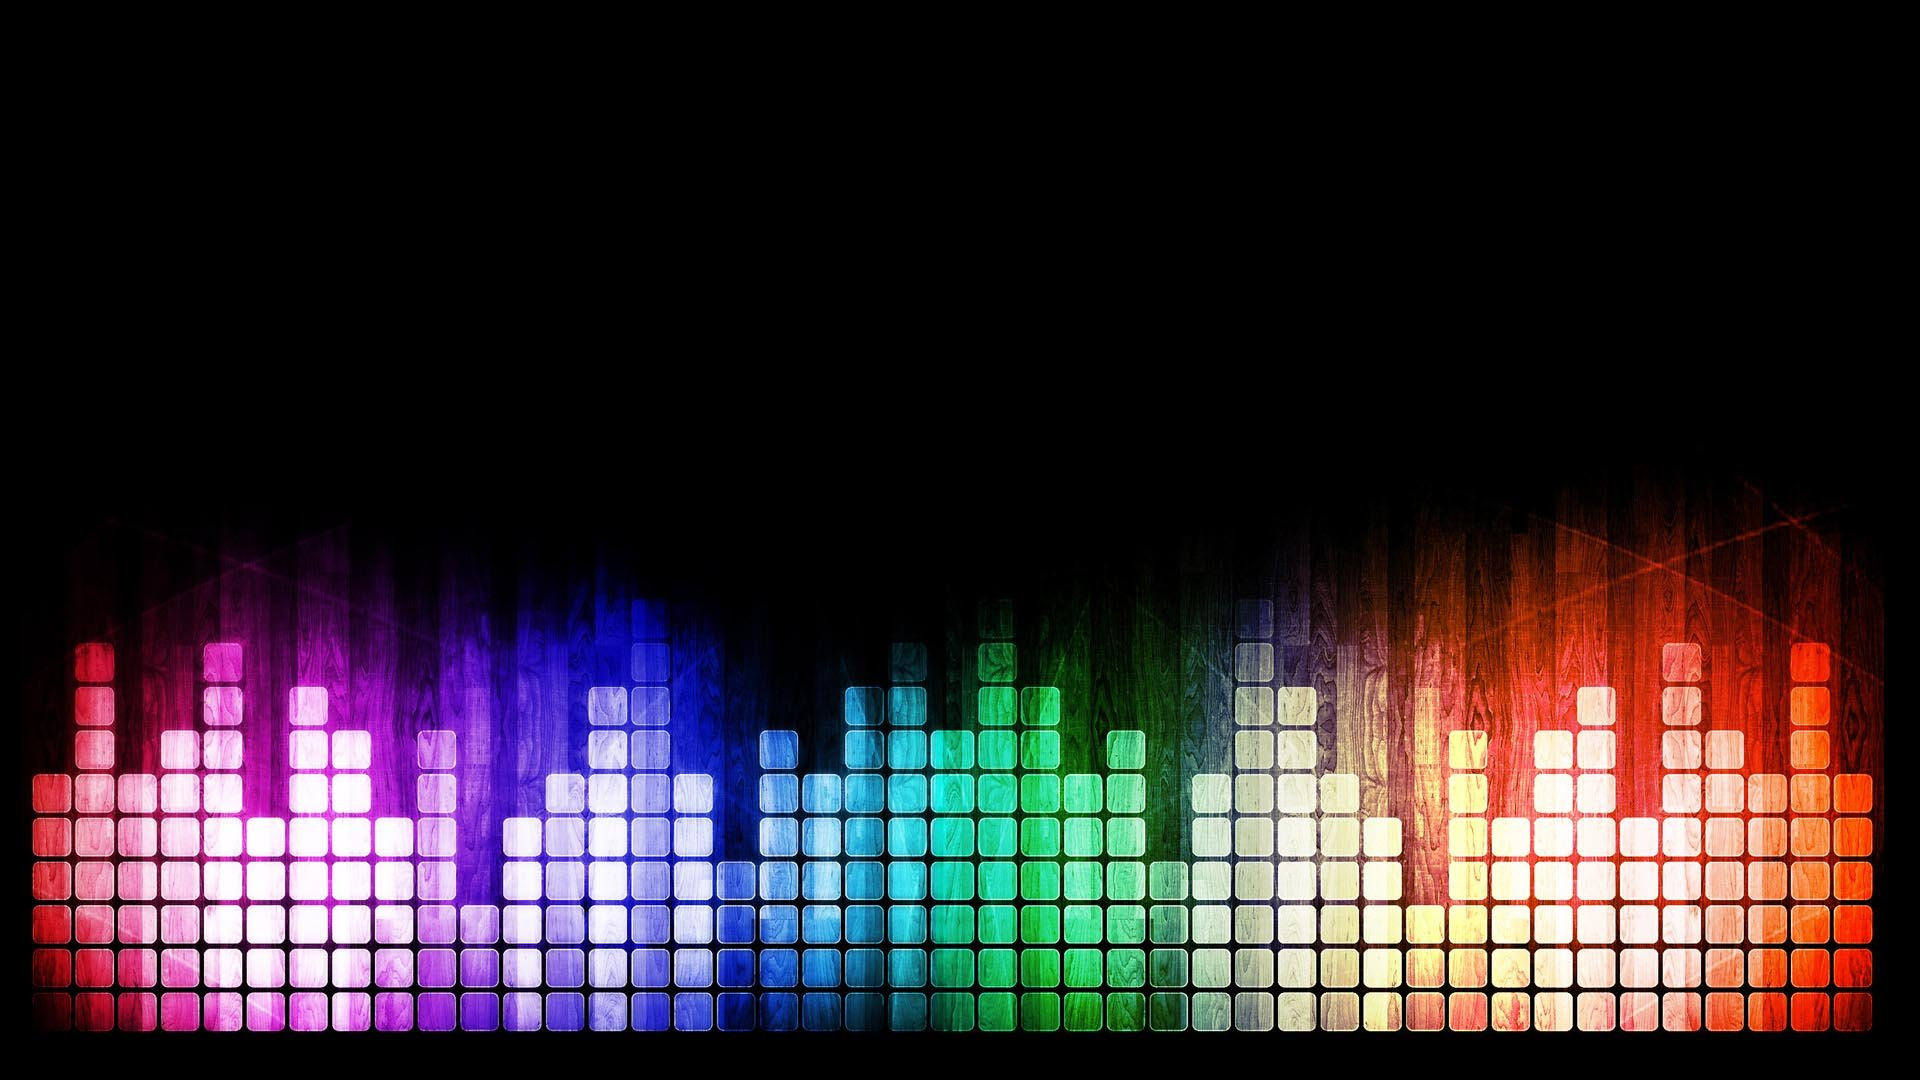 Hd Wallpapers Hd Backgrounds: HD Music Wallpapers 1080p